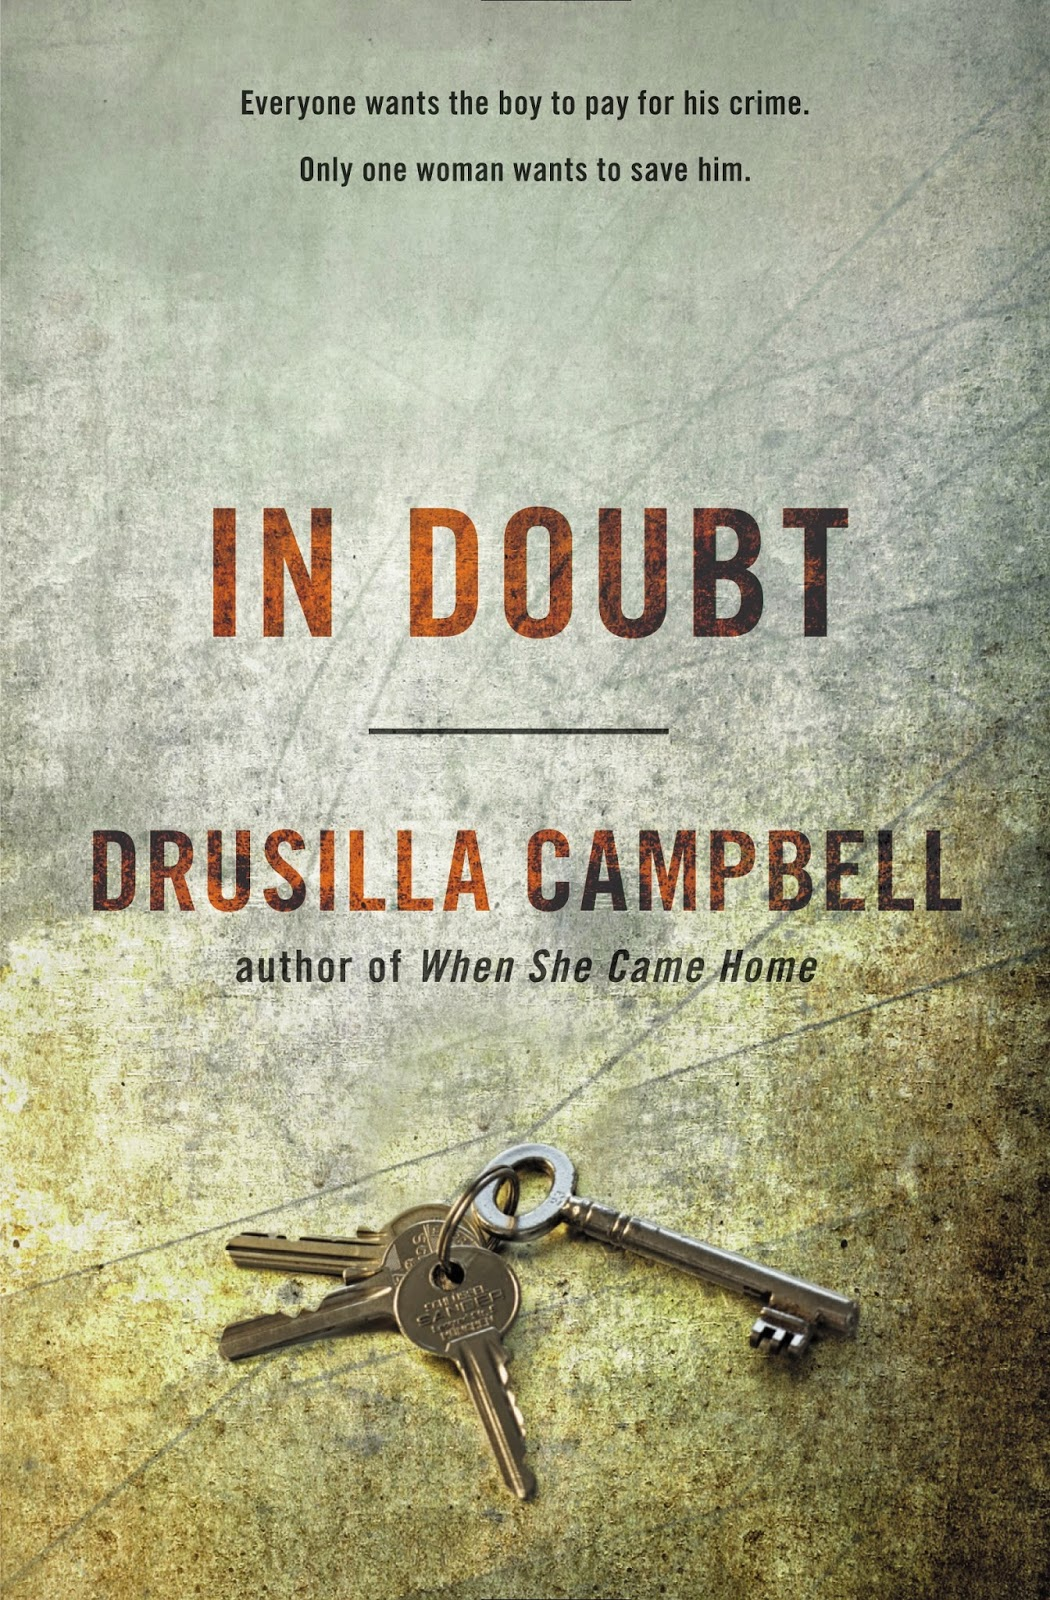 Interview with legal thriller author Drusilla Campbell